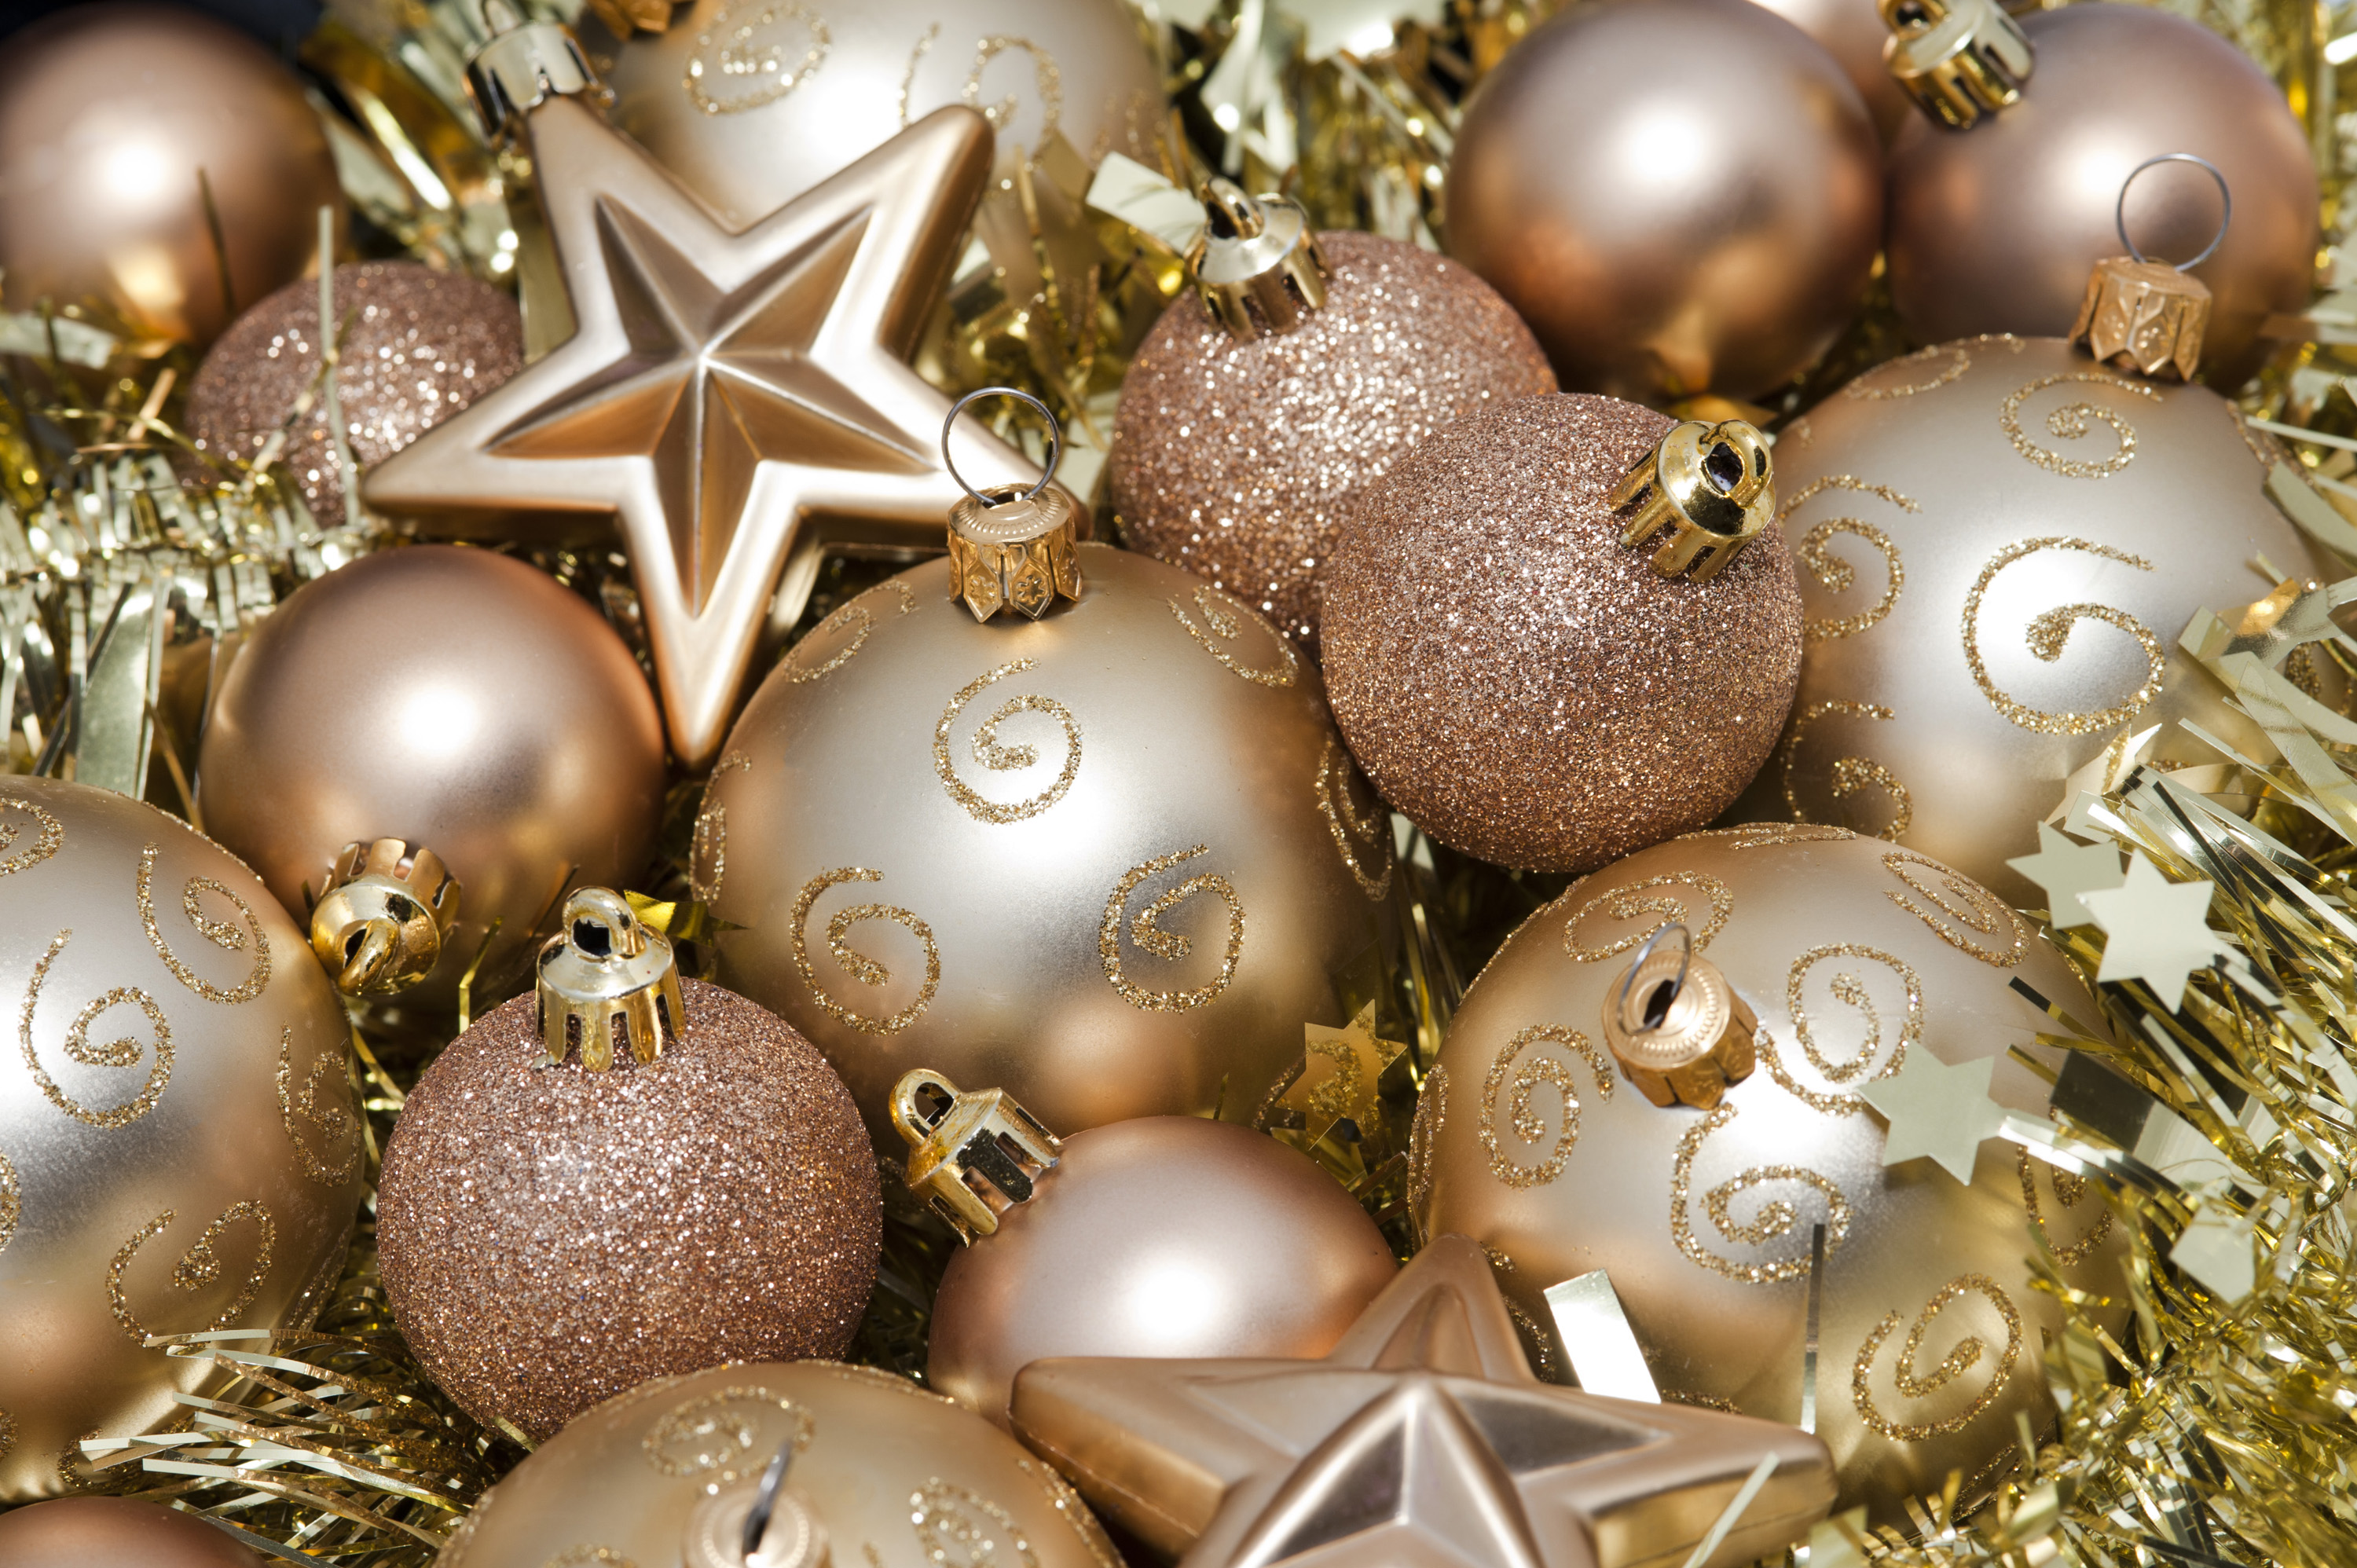 Superb High End Christmas Ornaments Part - 10: Photo Of Gold Christms Baubles And Stars Free Christmas Images. Vibrant High  End Christmas Decorations Majestic Seven Ideas To Organize Your Own Luxury